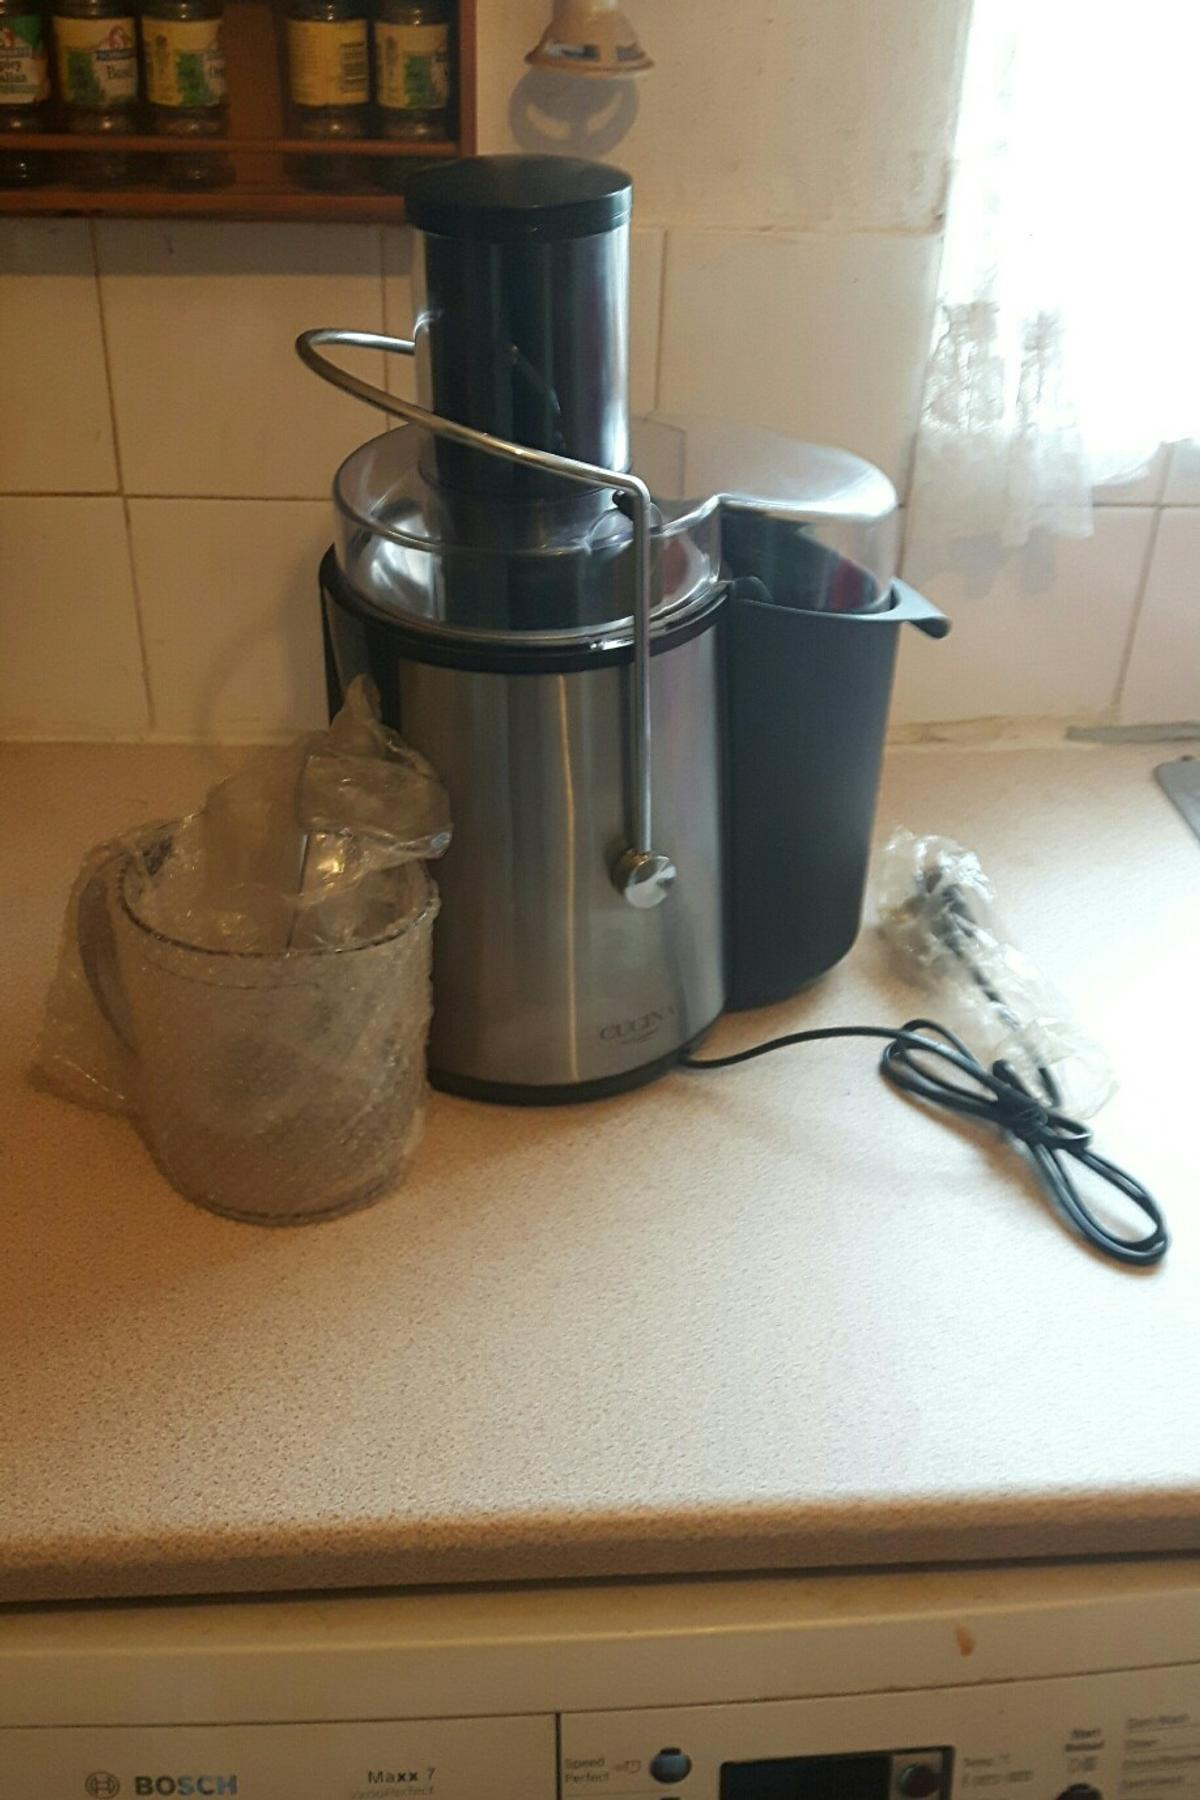 CUCINA JUICER in M40 Manchester for £10